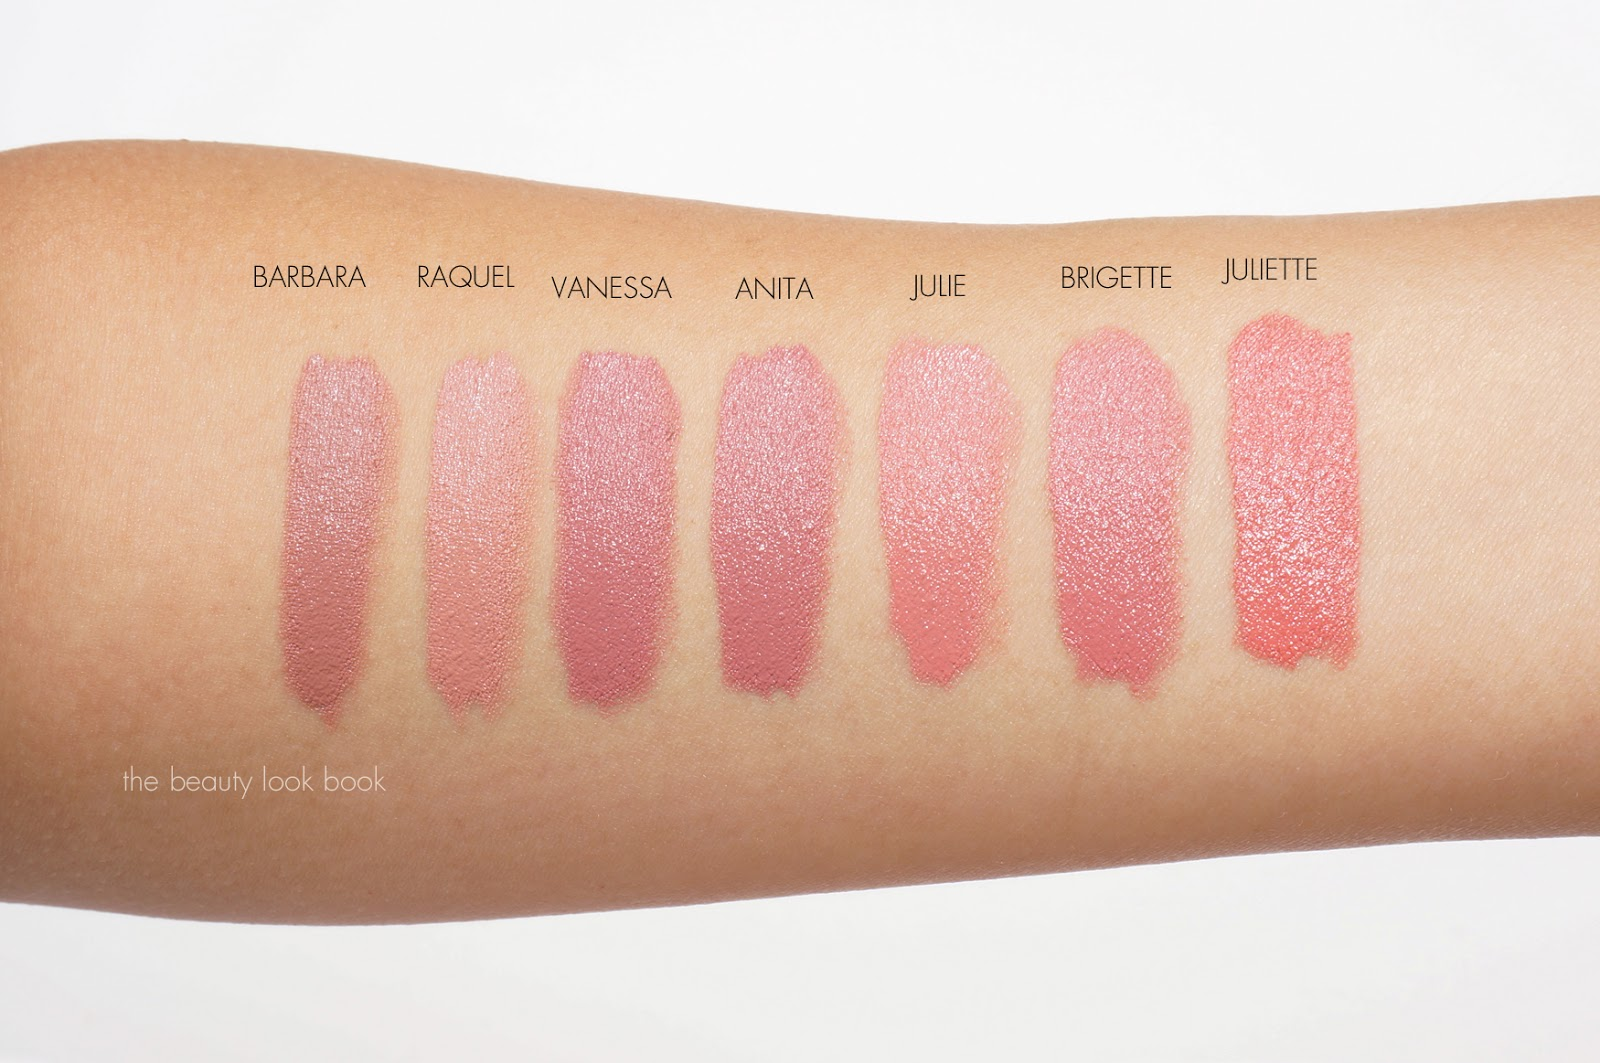 Souvent NARS Audacious Lipsticks | Lip Swatches for Barbara, Raquel  VK59